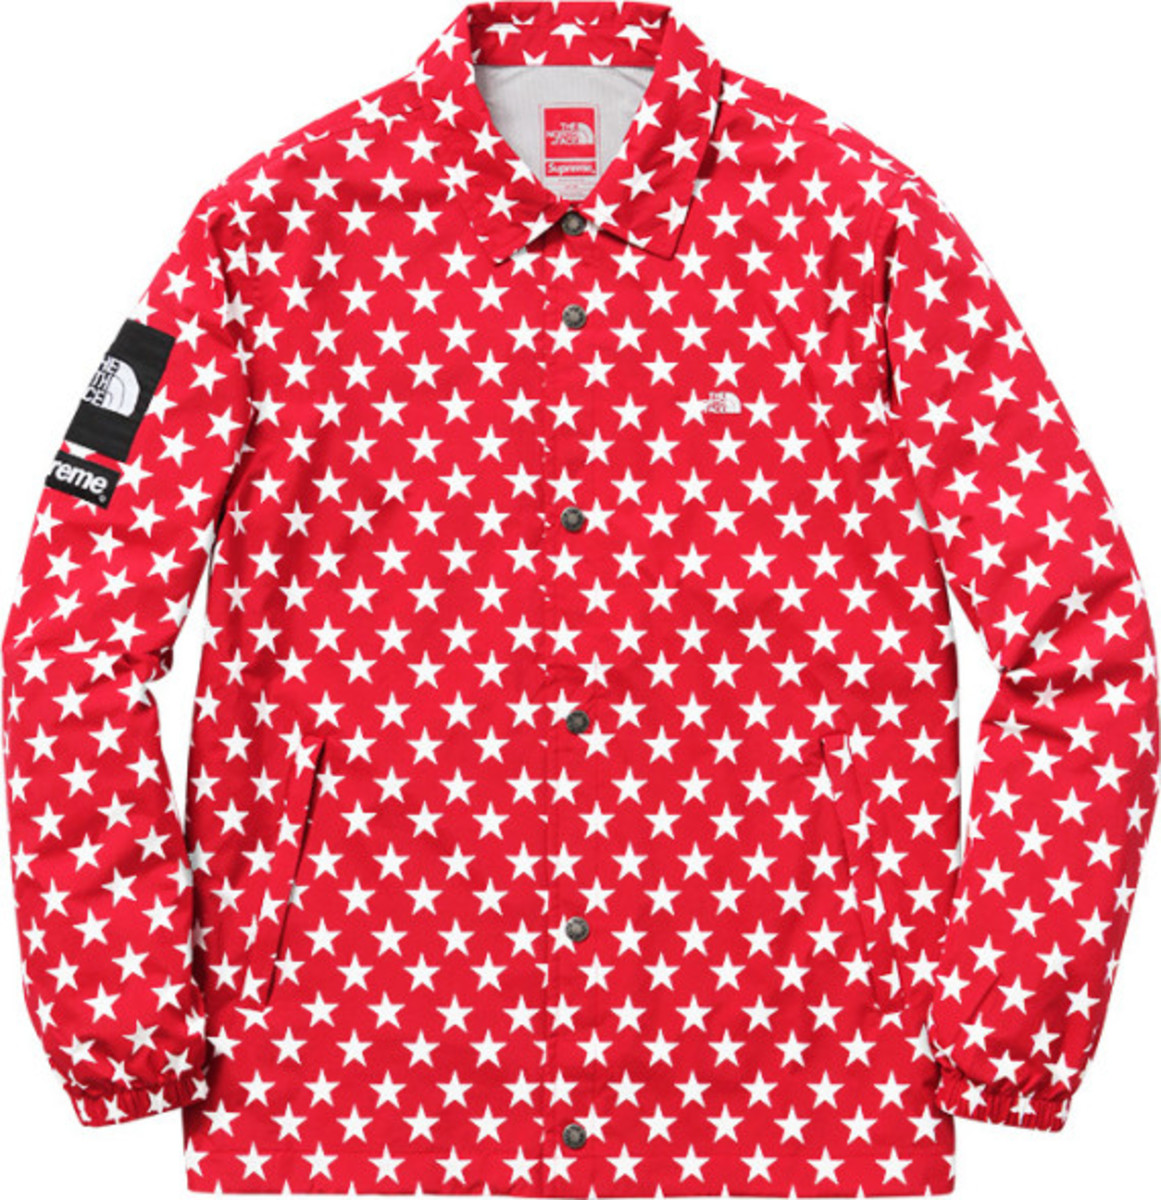 Supreme x The North Face - Spring/Summer 2015 Apparel and Gear Collection - 14